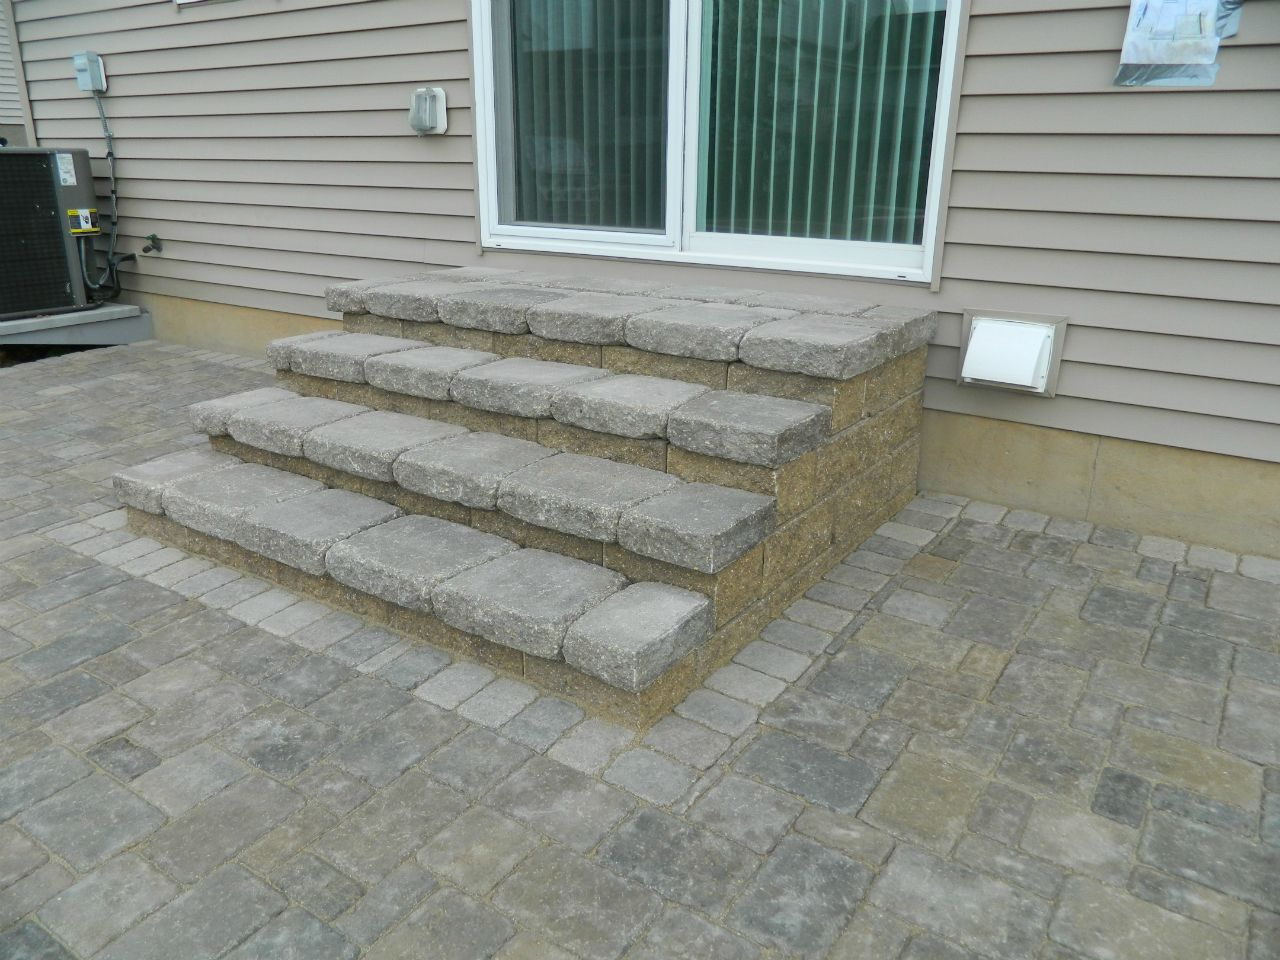 Image of: Stair Patio Paver Design Ideas